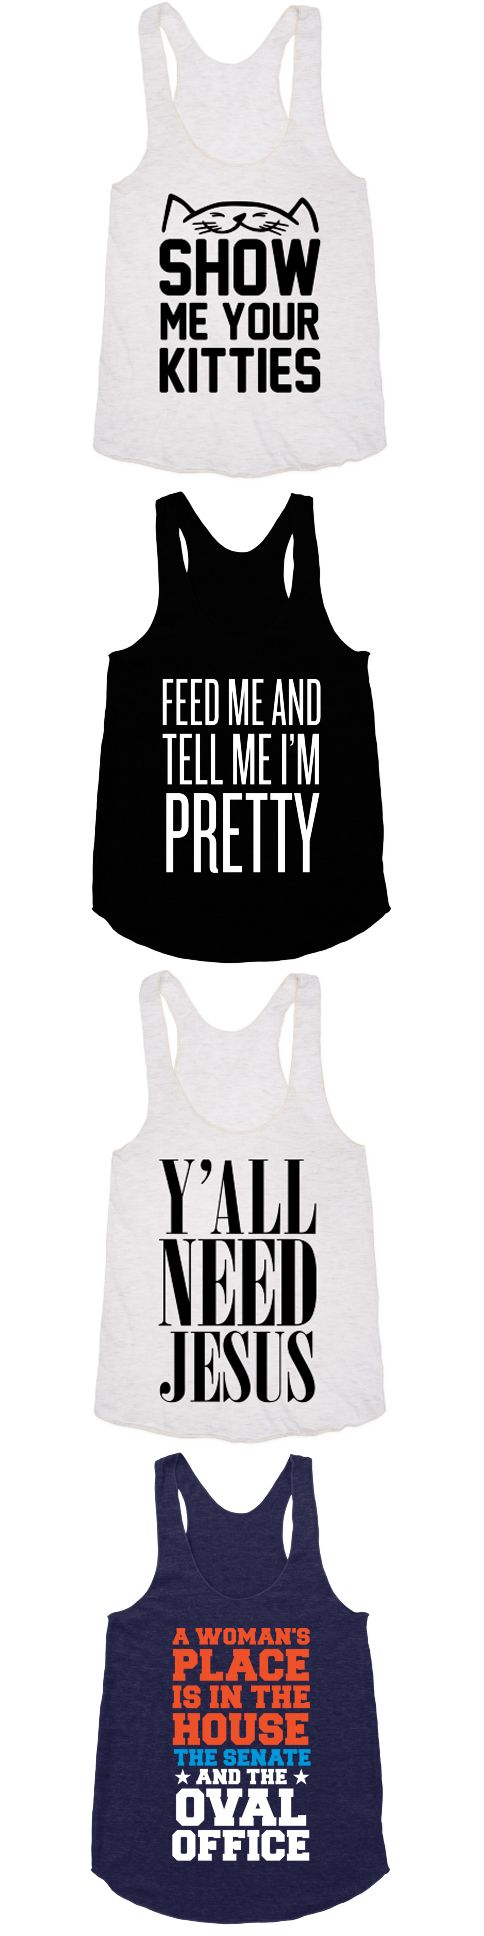 Racerback tanks are so in right now.